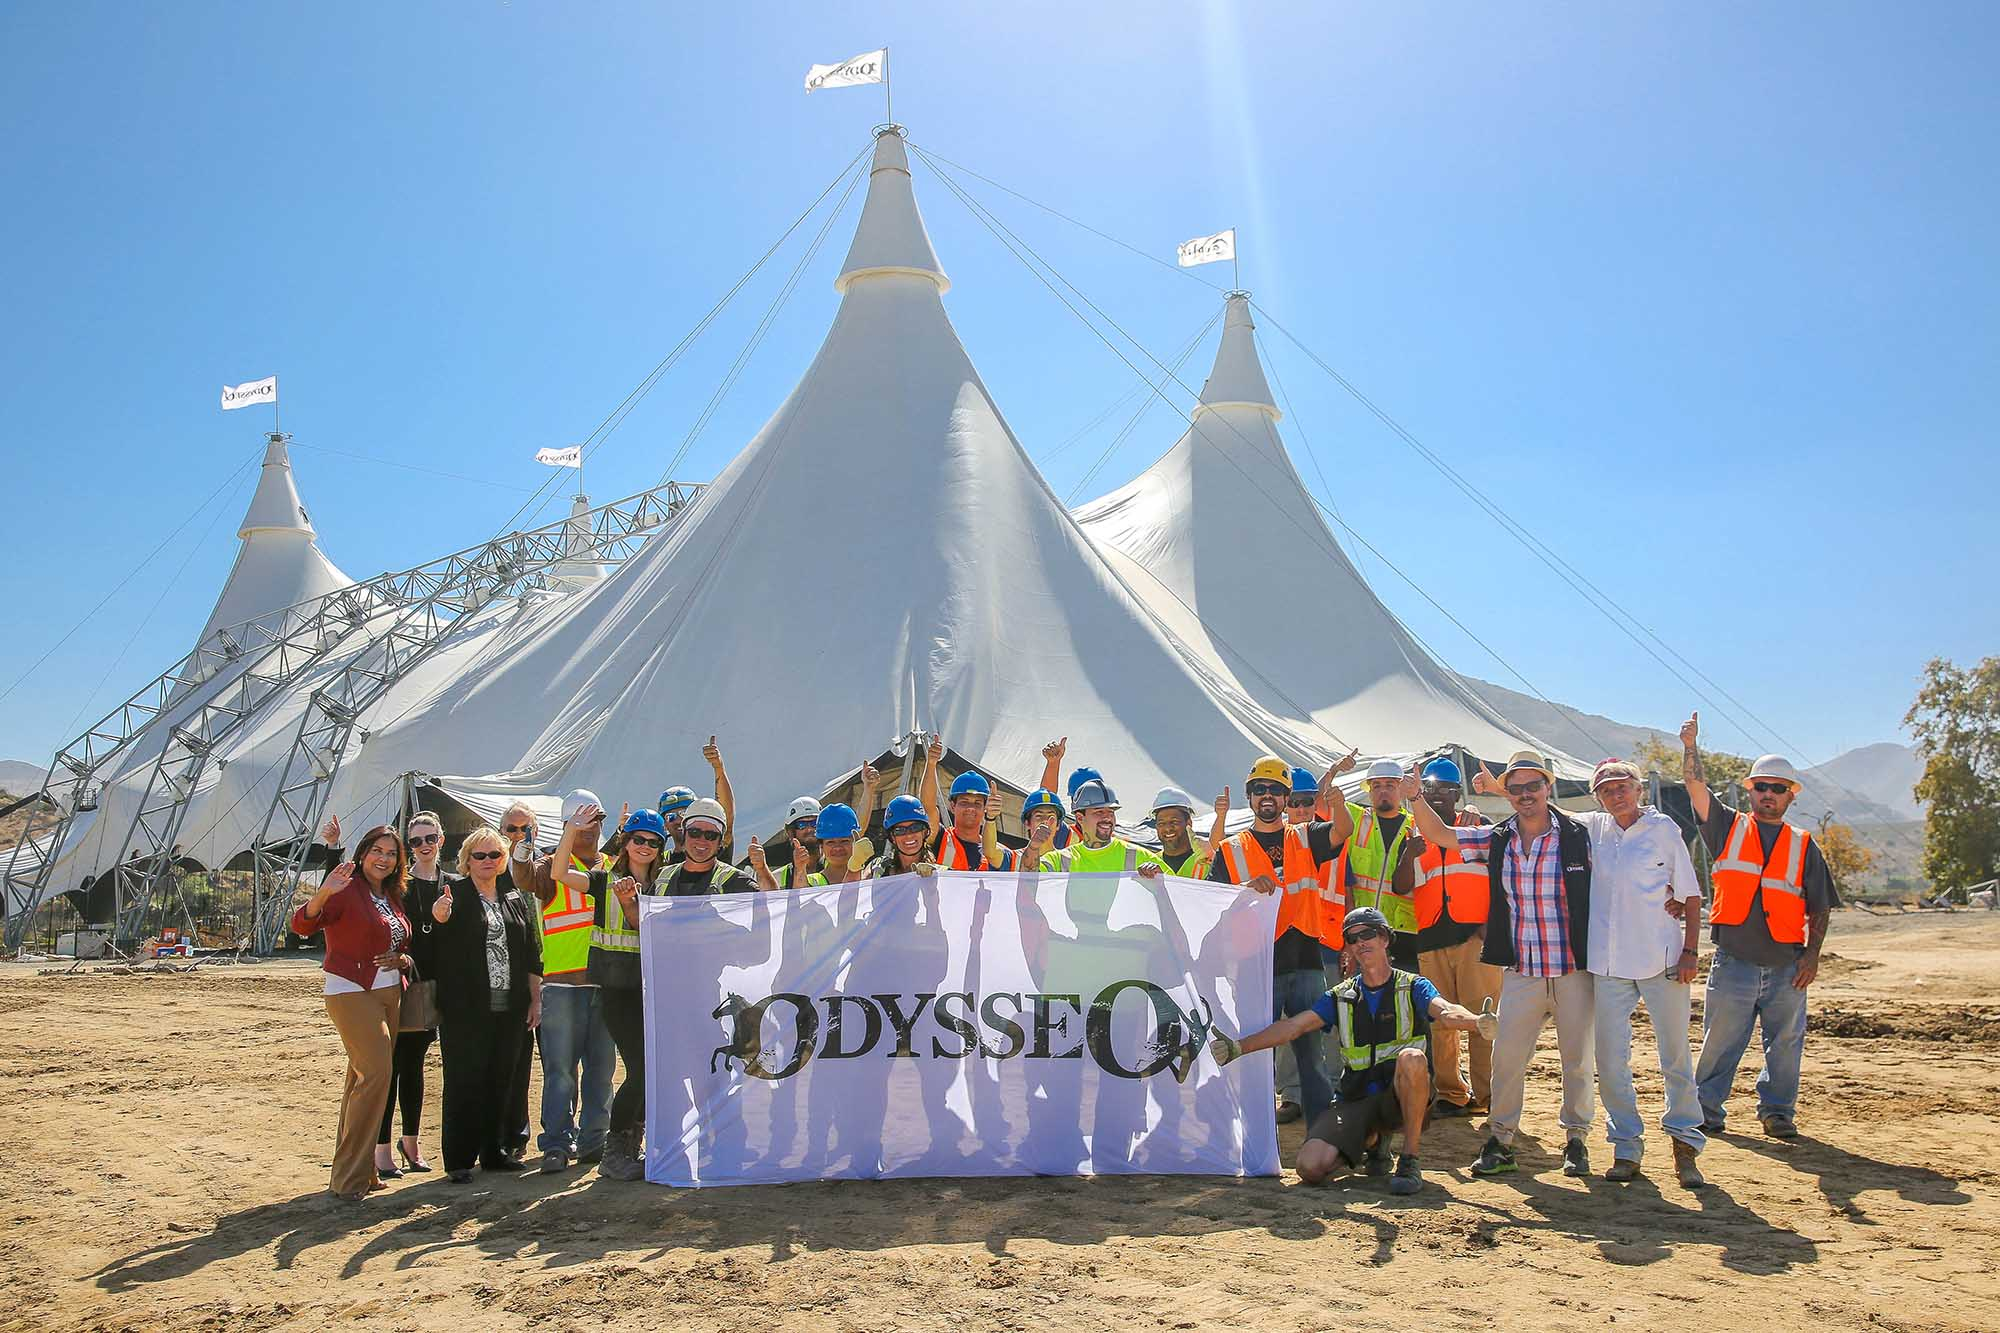 Odysseo Ventura County • Our White Big Top is up in Camarillo!